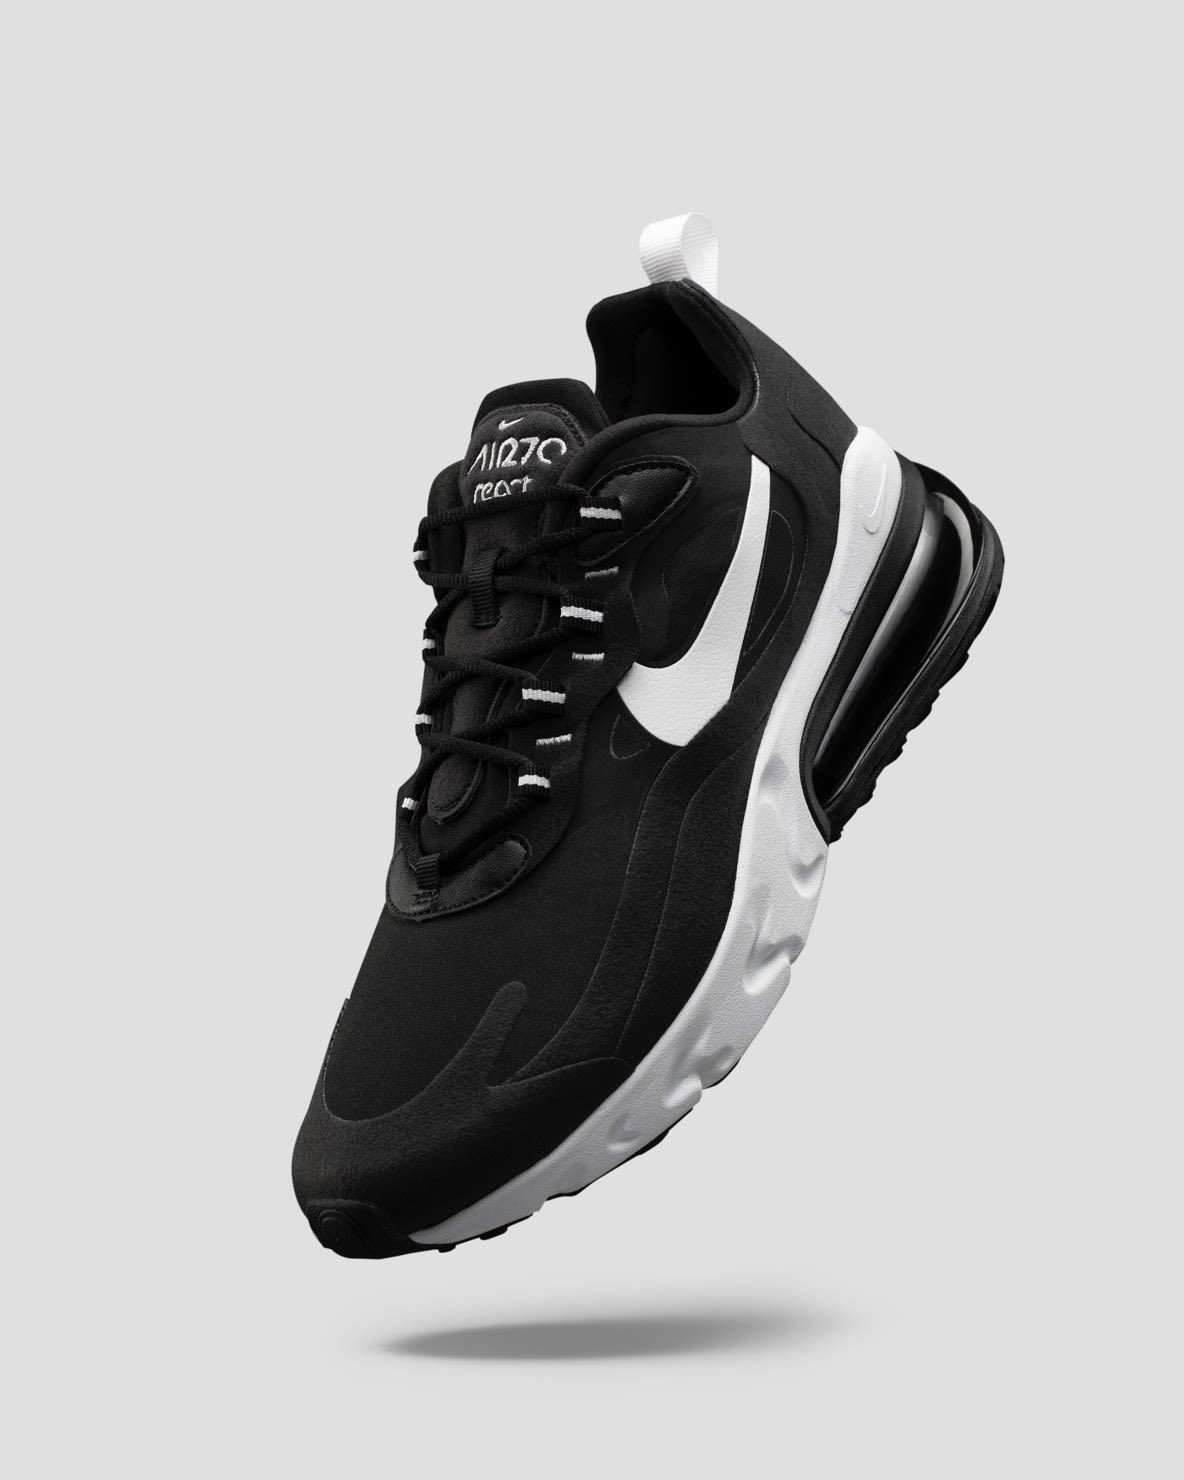 Nike Men's Shoes, Clothing and Gear.